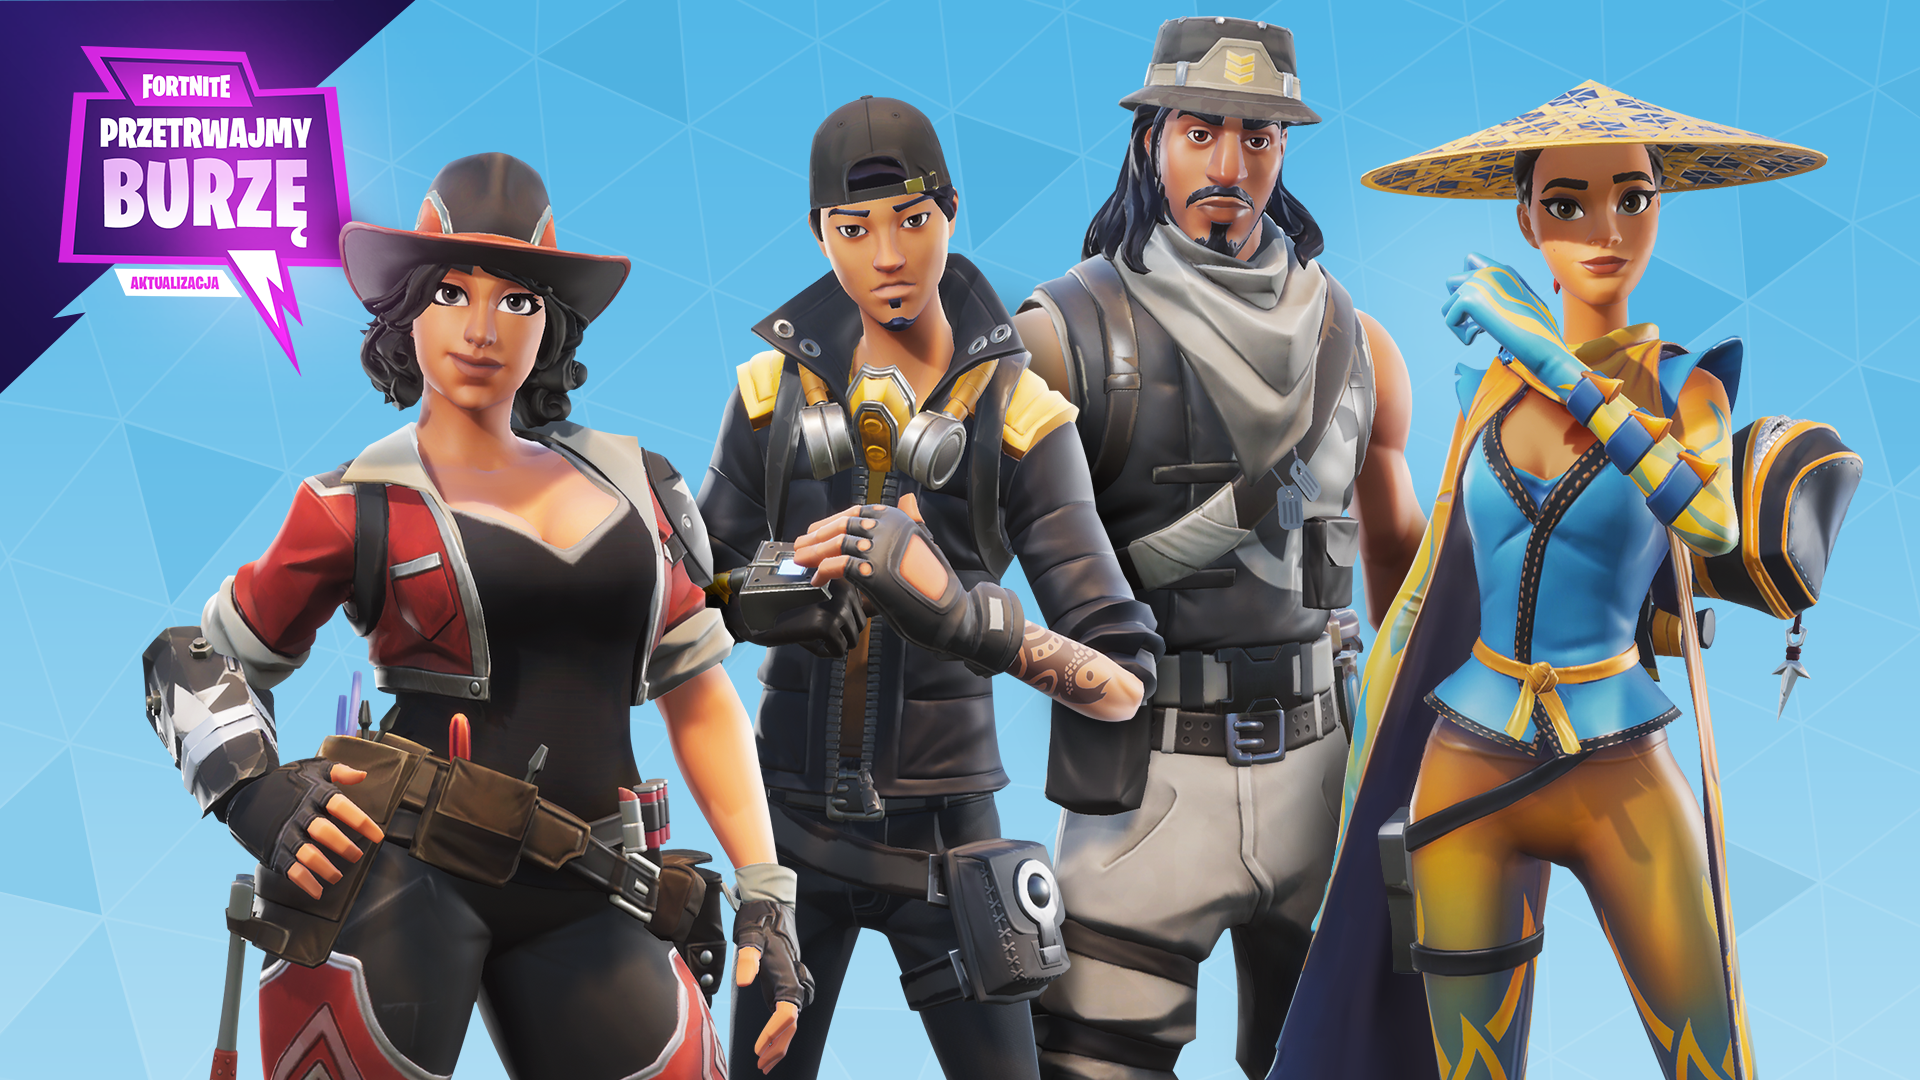 Fortnite%2Fblog%2Fsurvive-the-storm---release-notes%2FPL_New-Hereos-1920x1080-94120d2c52b3d55fff77132b882ca7ff990b3141